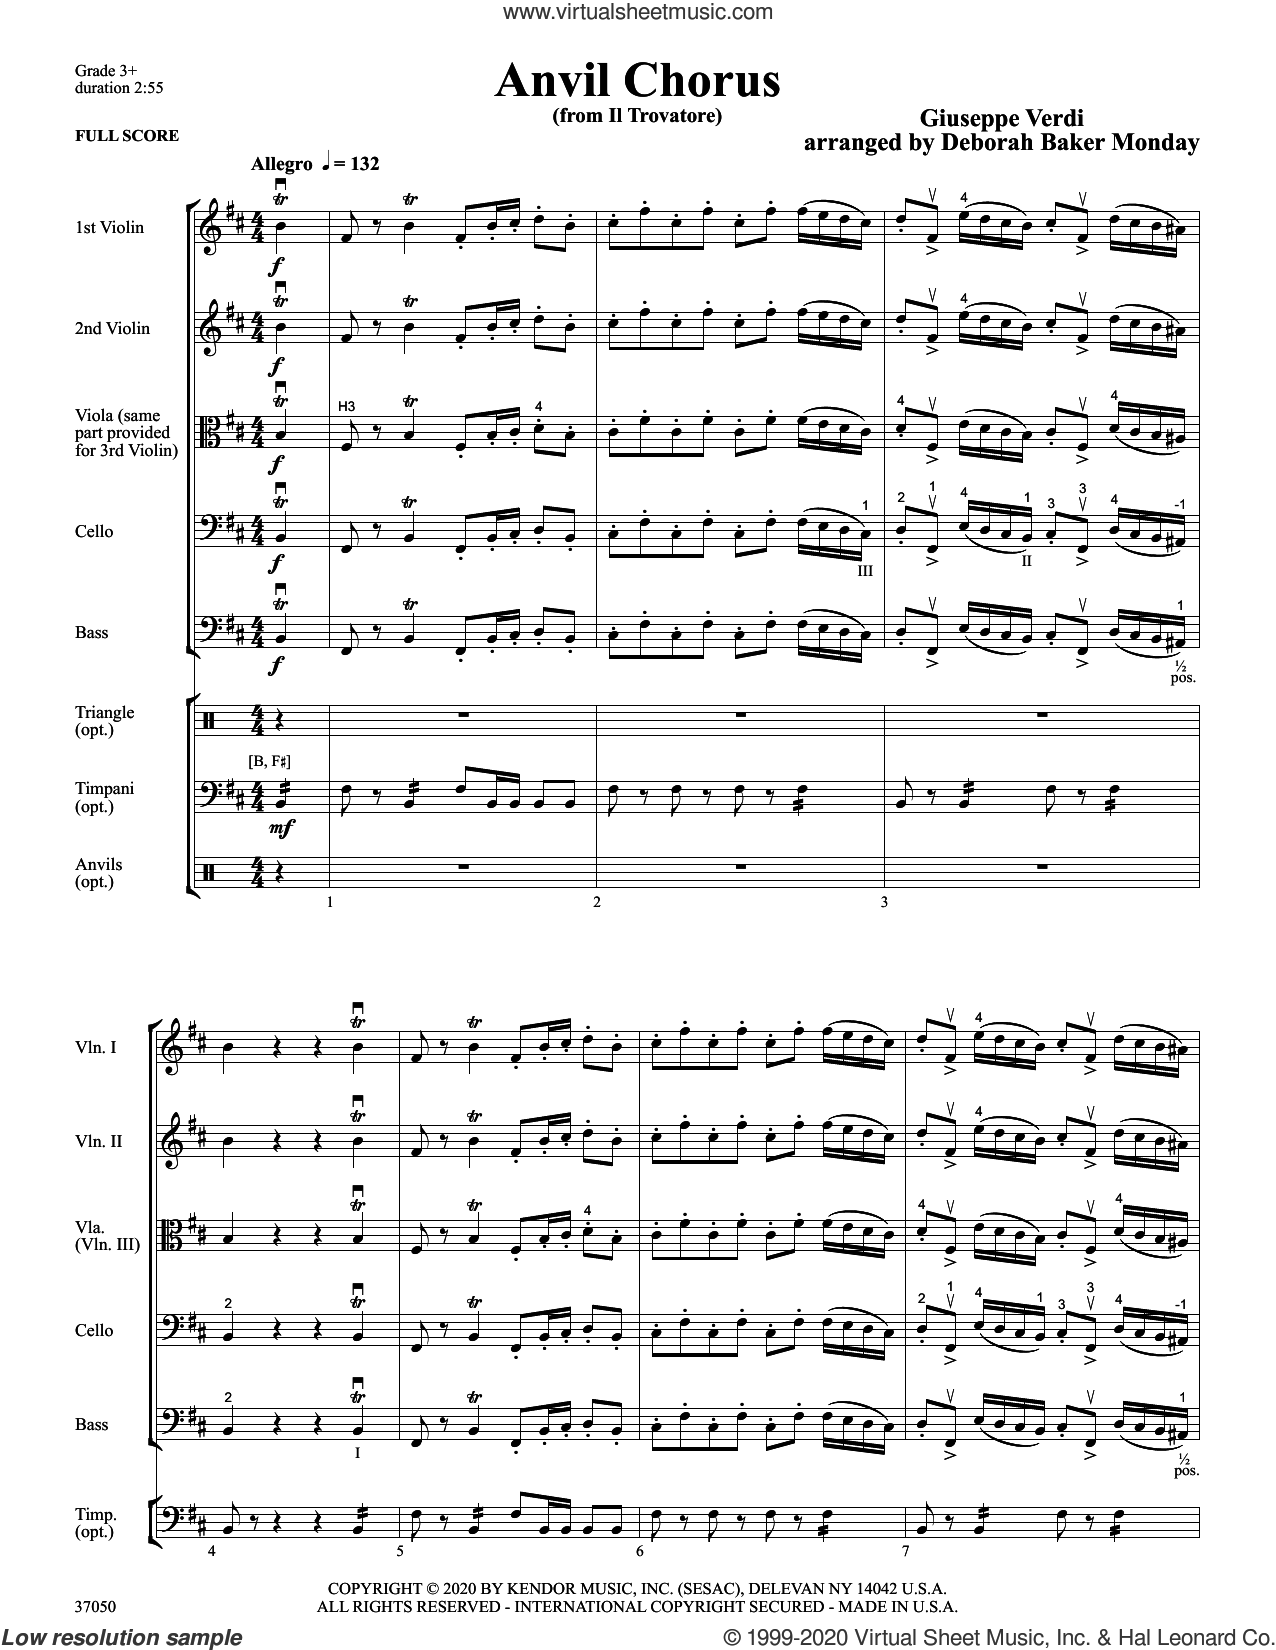 Anvil Chorus (from Il Trovatore) (arr. Deborah Baker Monday) (COMPLETE) sheet music for orchestra by Giuseppe Verdi and Deborah Baker Monday, classical score, intermediate skill level